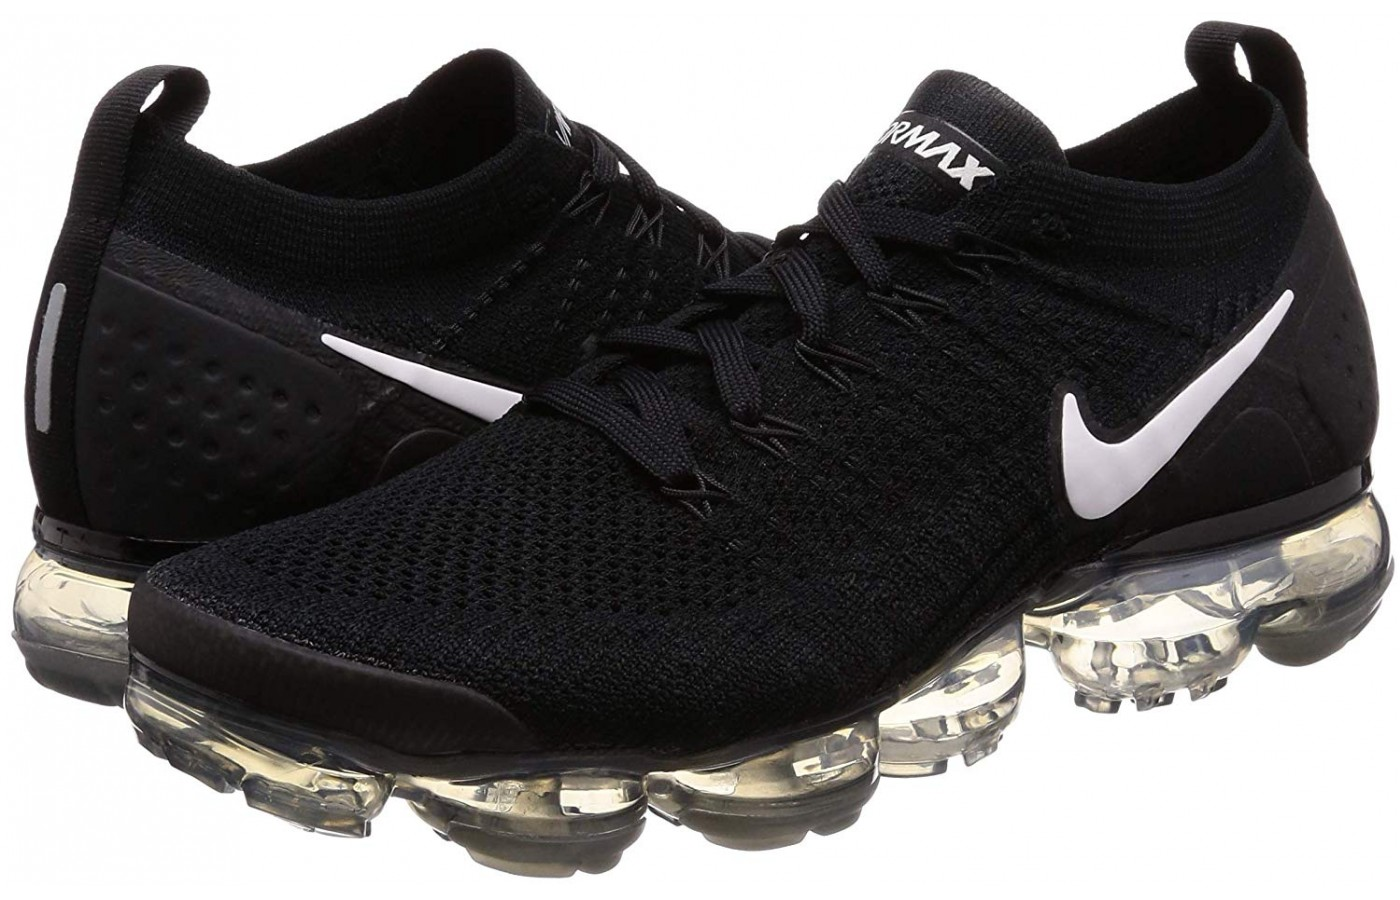 Nike Air VaporMax Flyknit 2 is both stylish and functional